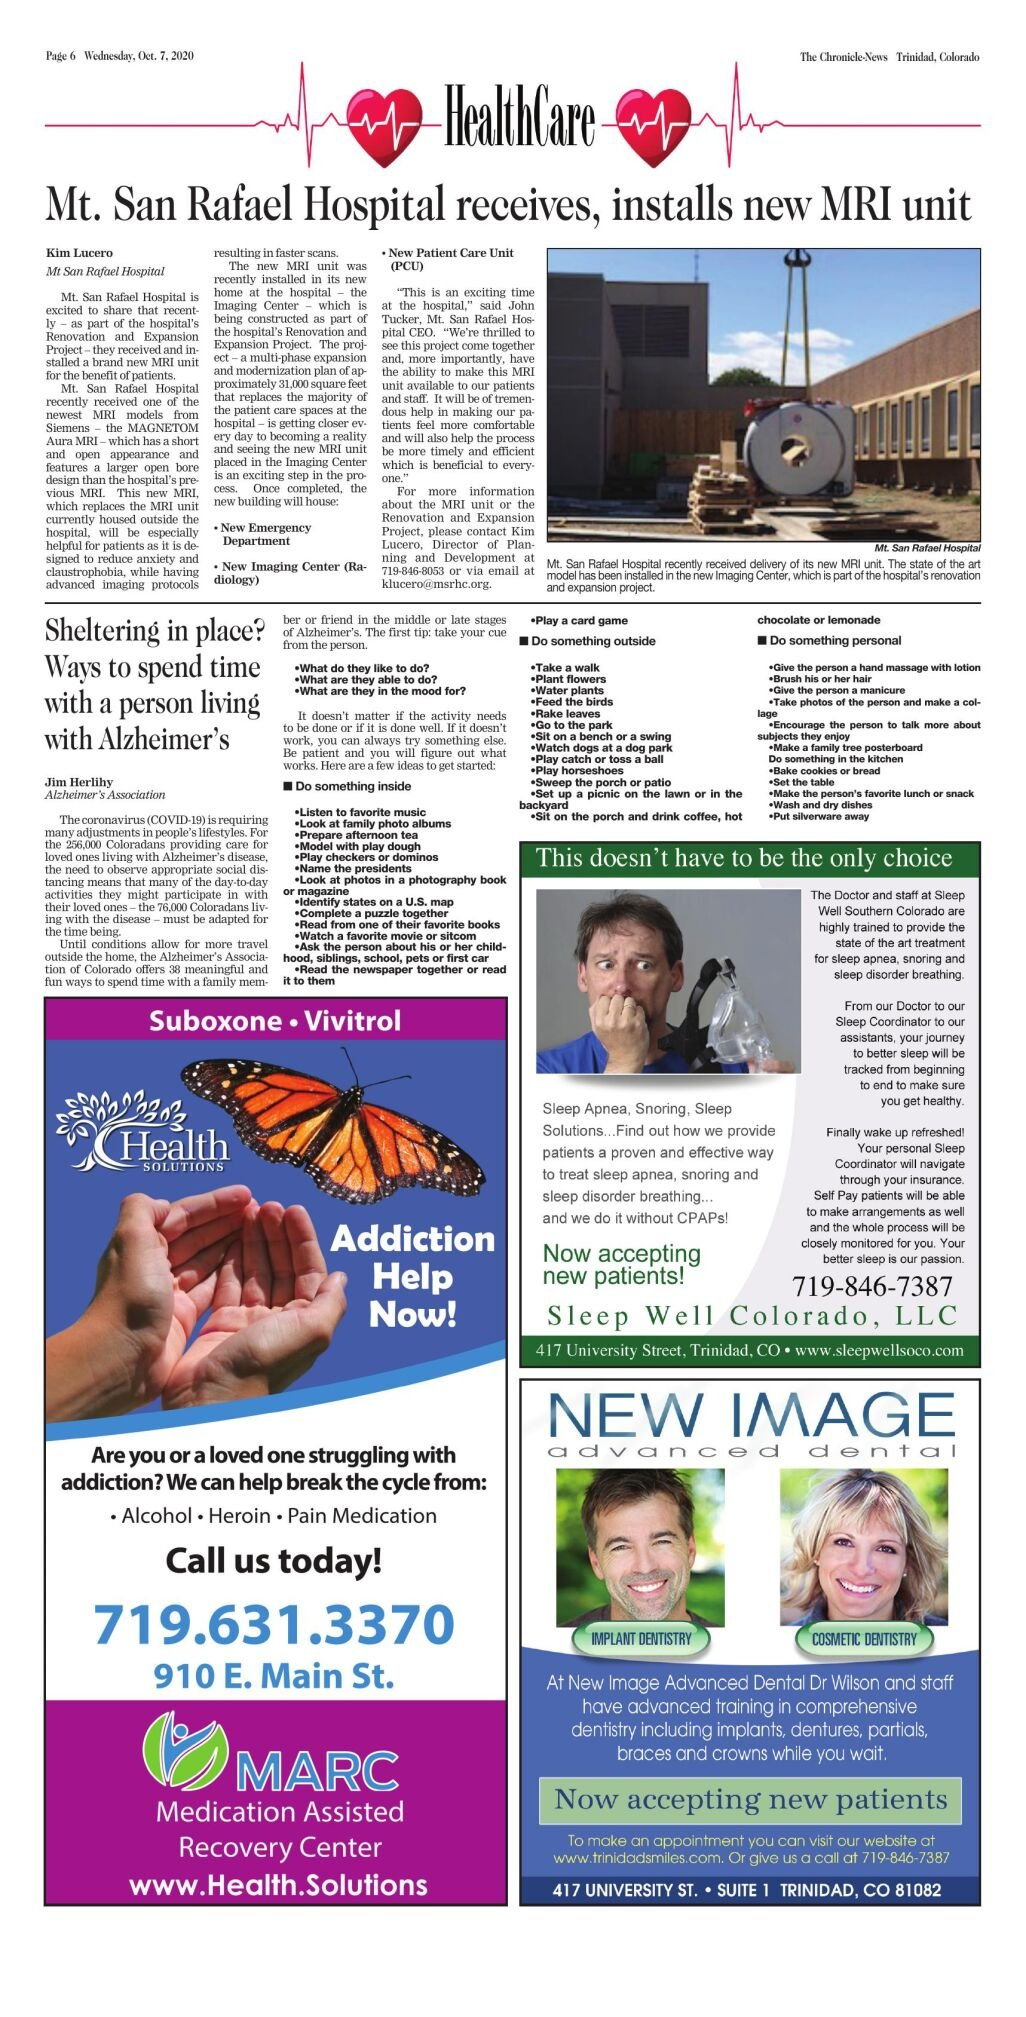 Healthcare October 7 2020 Sponsored Thechronicle News Com